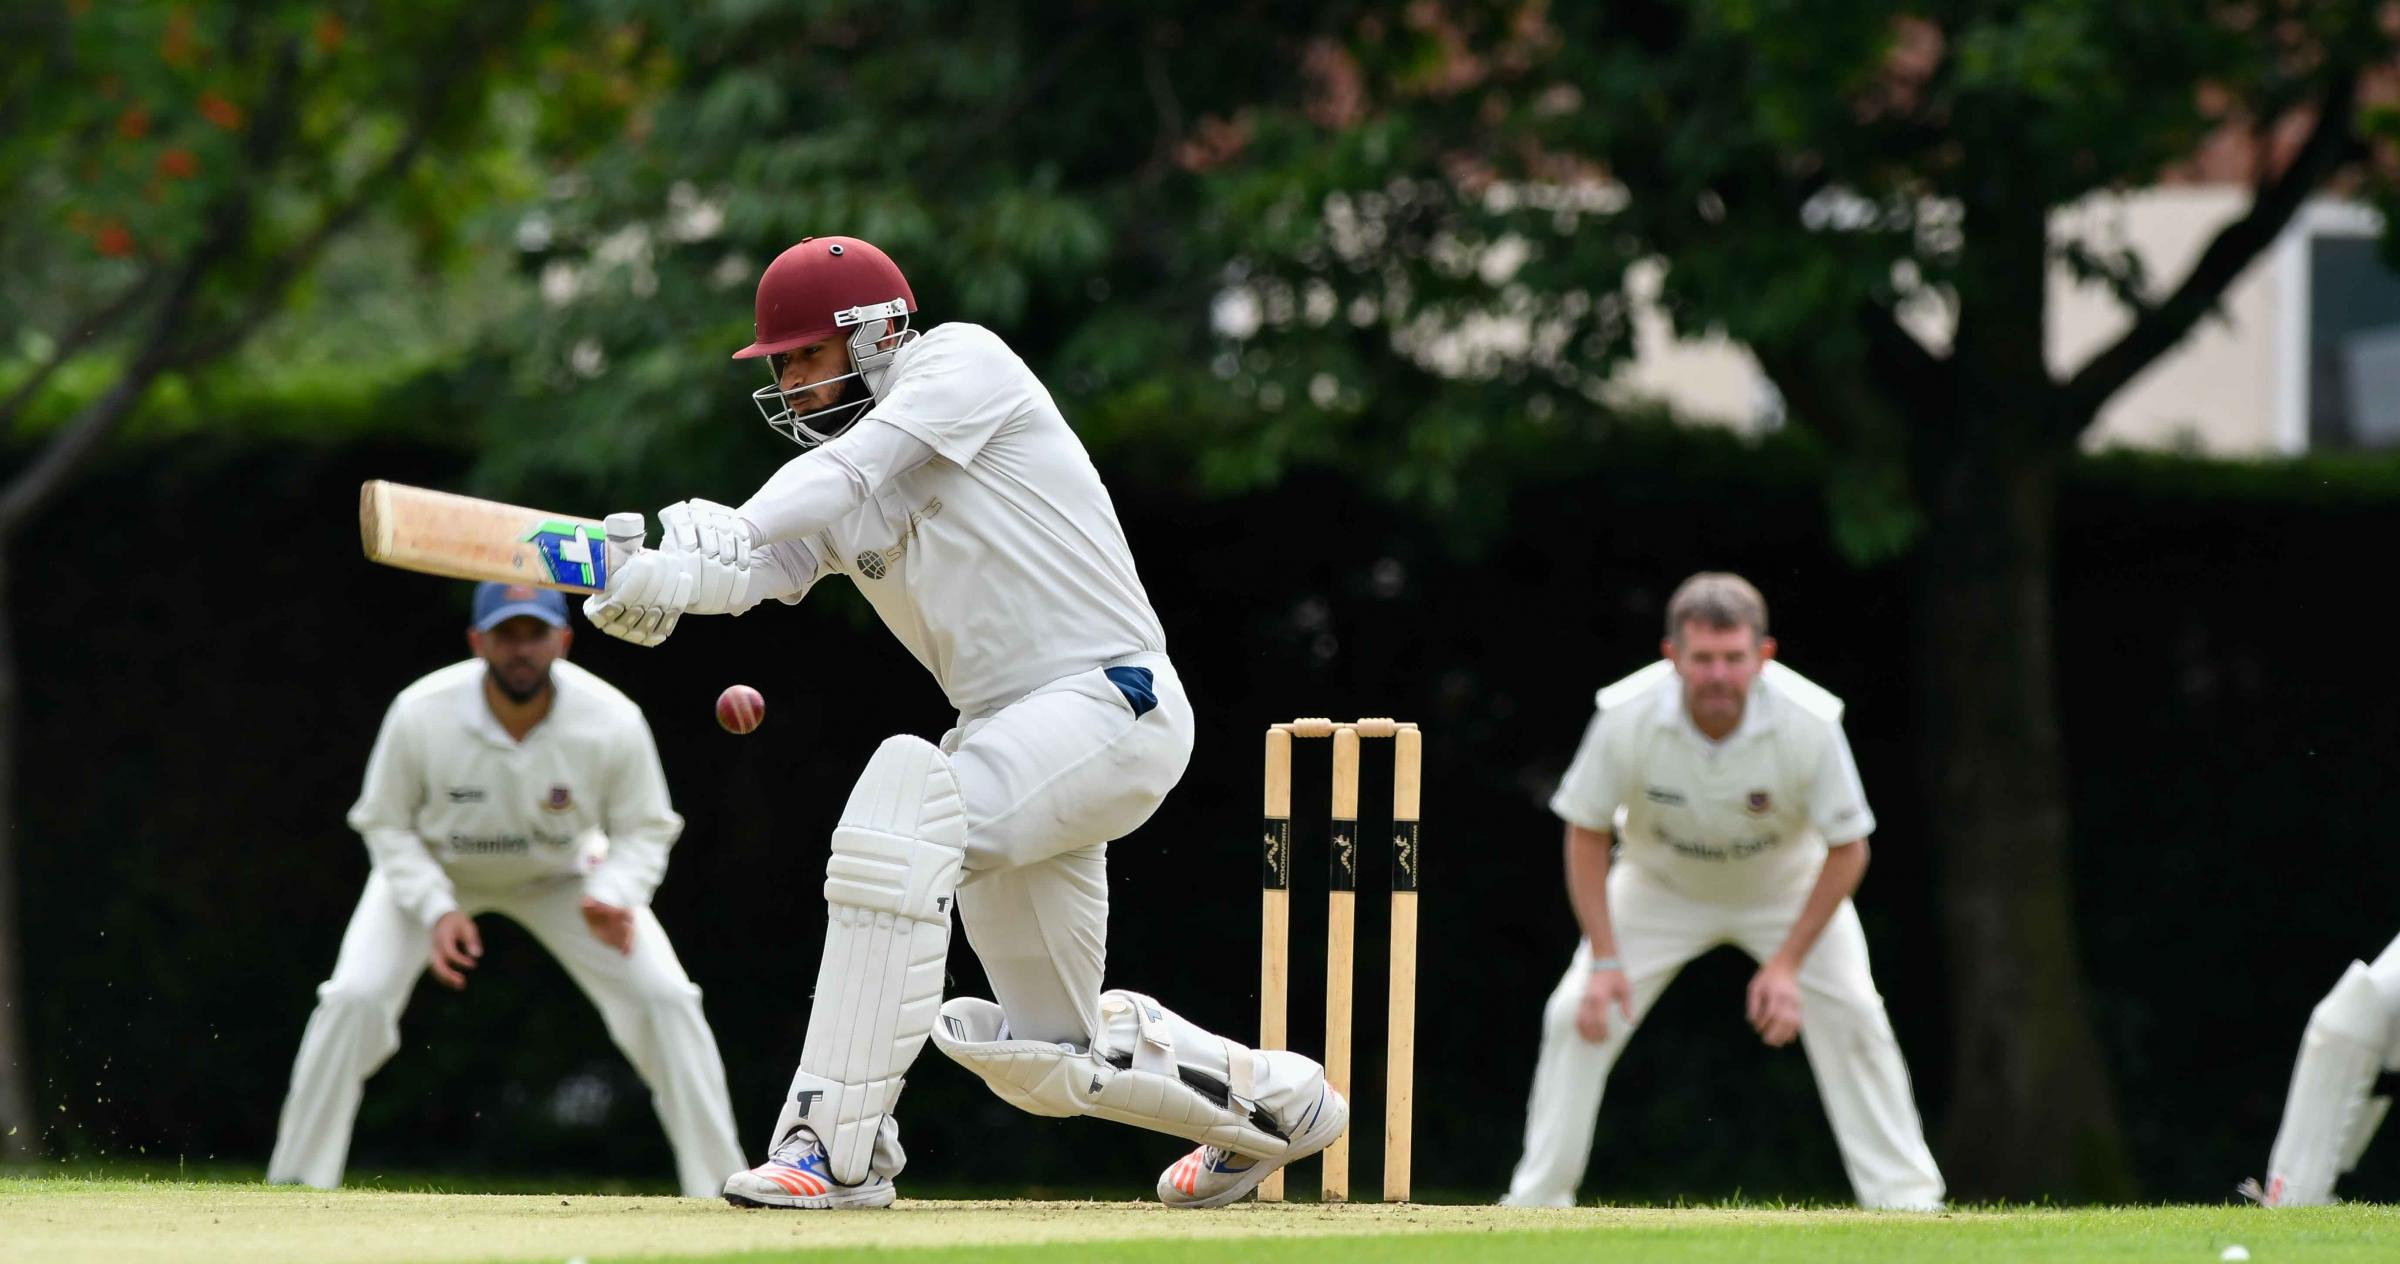 Pudsey Congs opener Mubtada Akhtar scored 45 in their agonising one-run defeat to New Farnley that sealed their relegation